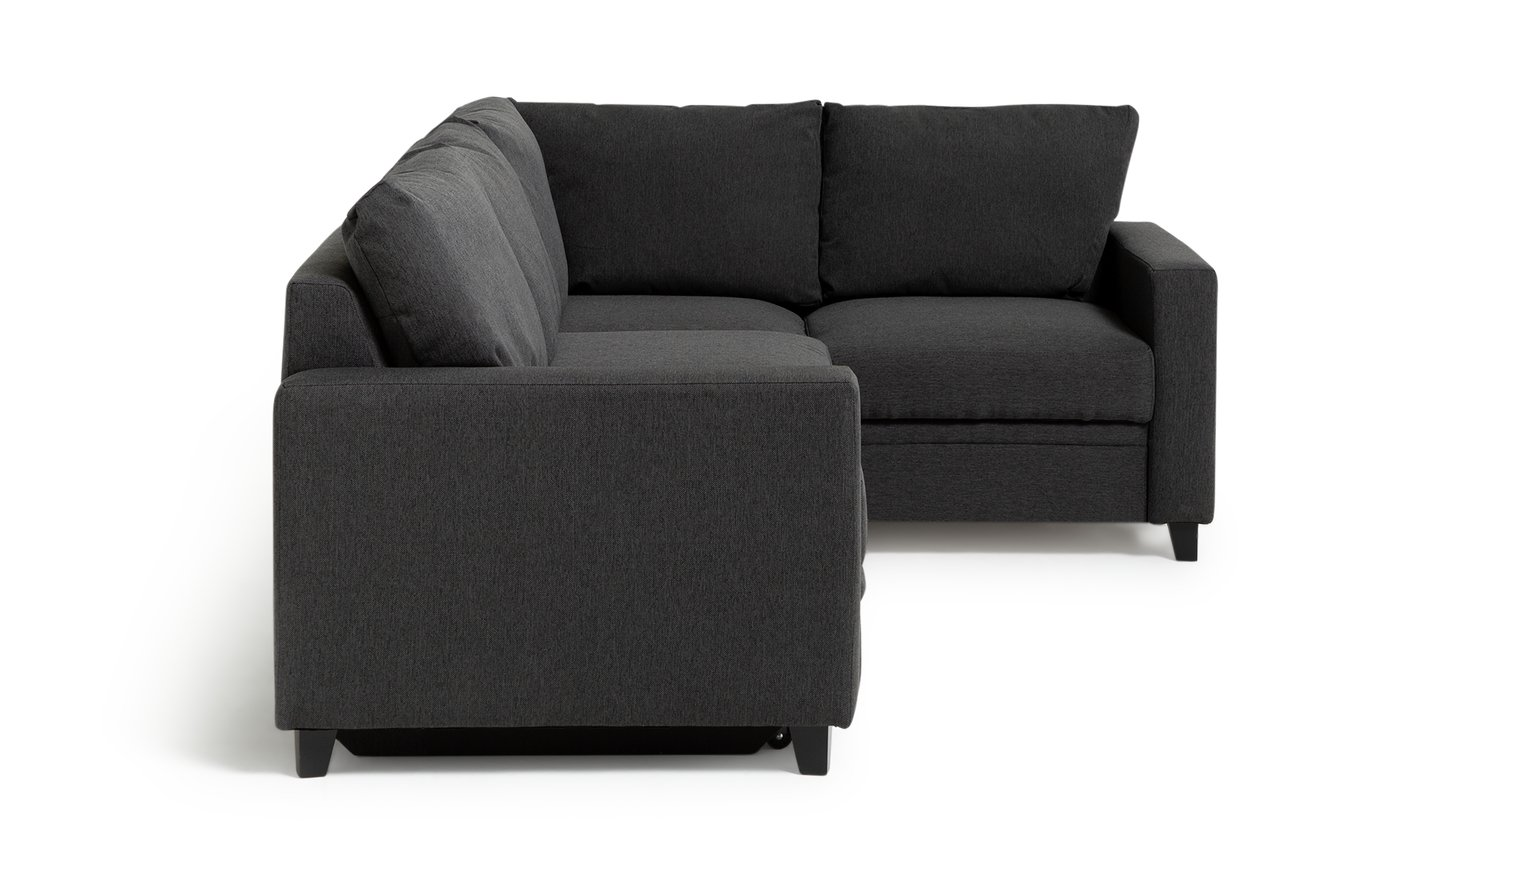 buy argos home seattle right corner fabric sofa bed charcoal rh argos co uk where to buy a sofa bed mattress where can i buy a sofa beds cheap